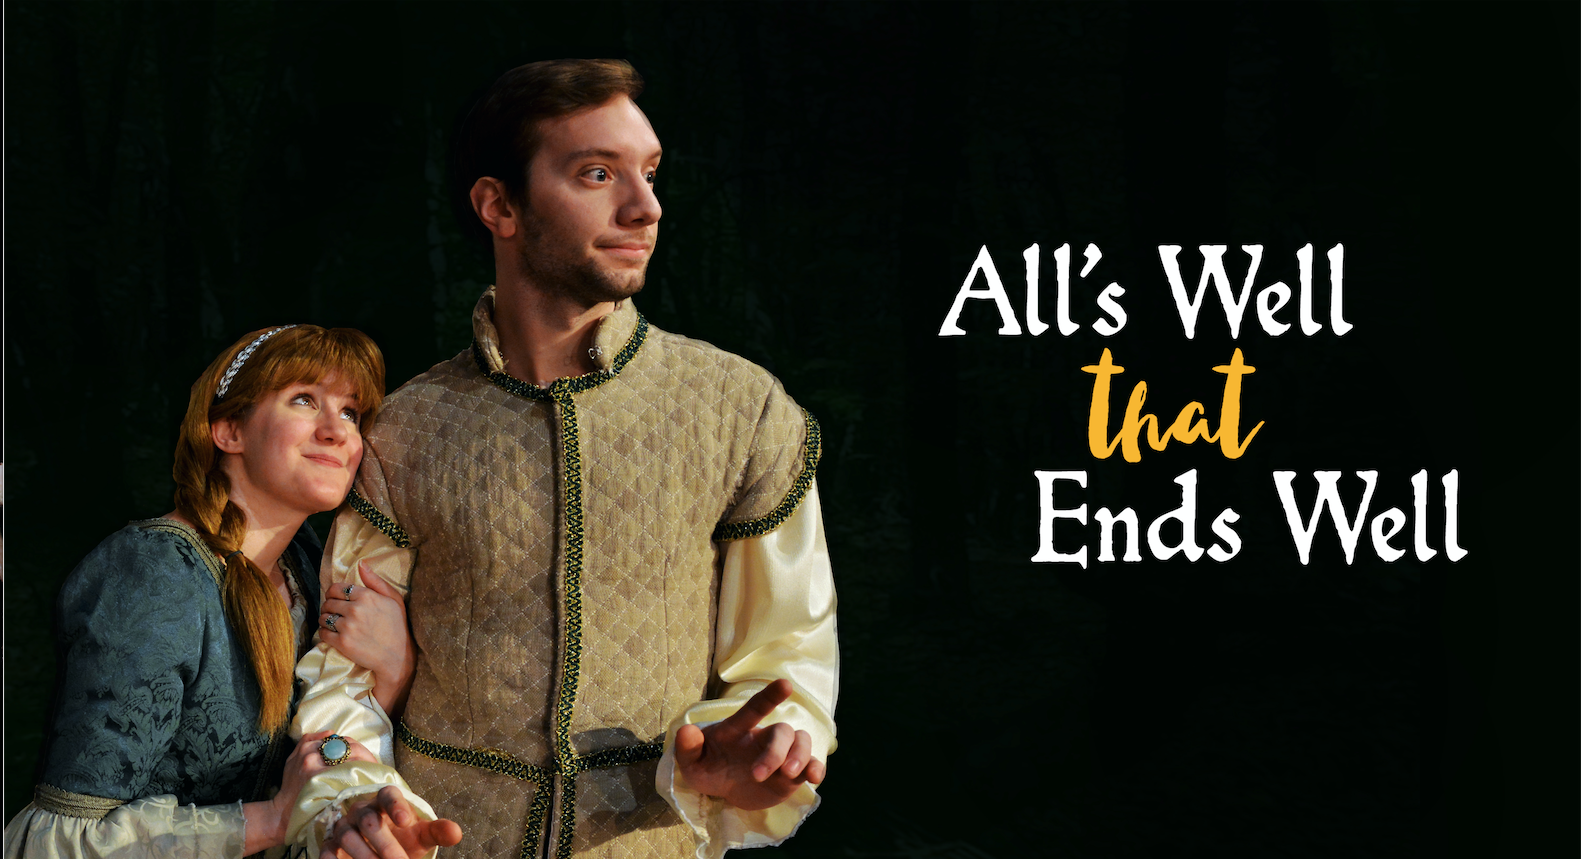 Tickets For Alls Well That Ends Well In Akron From Showclix